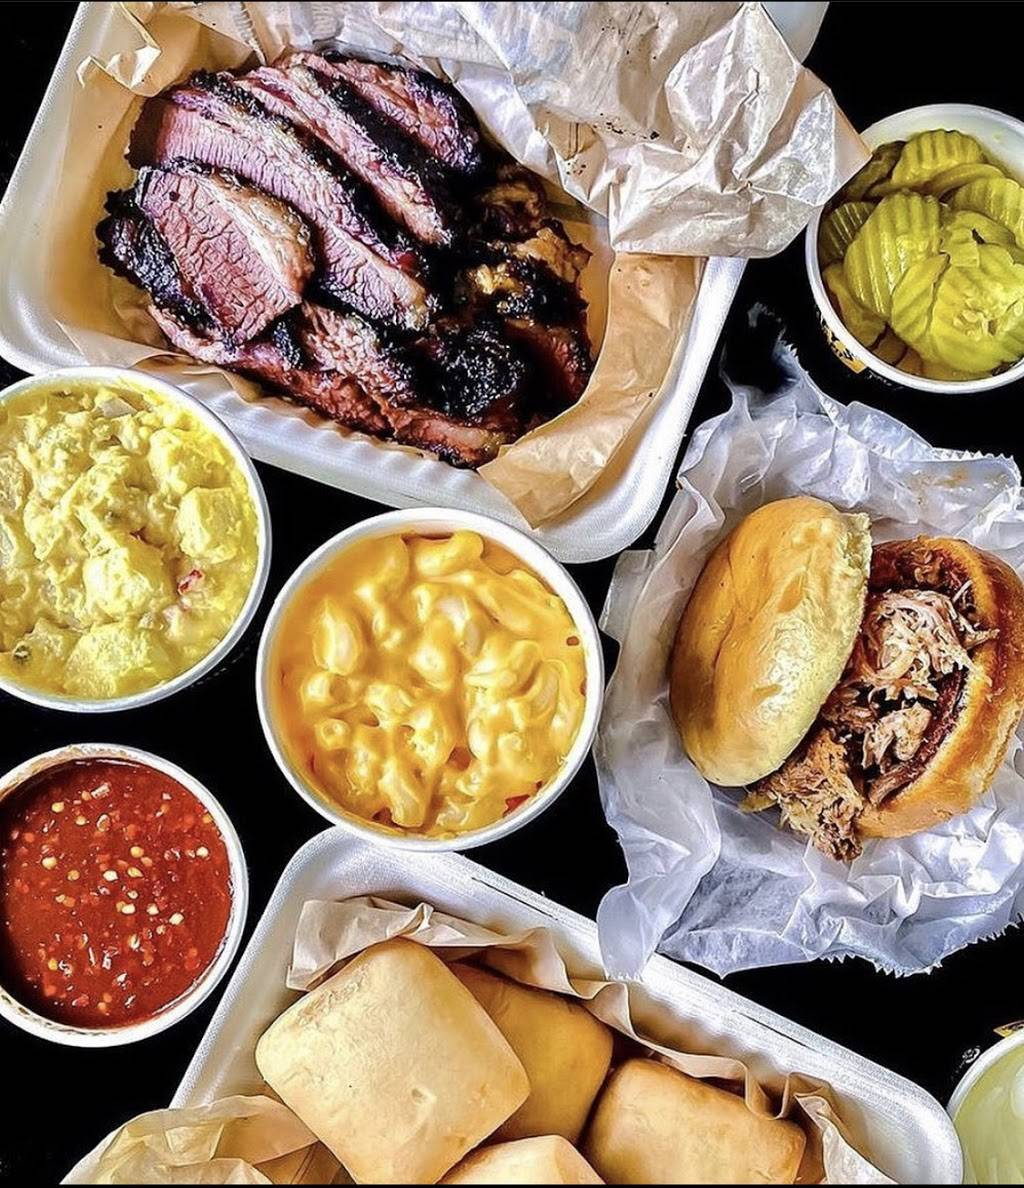 Dickeys Barbecue Pit | meal delivery | 43 S Stephanie St Suite 100, Henderson, NV 89012, USA | 7024637860 OR +1 702-463-7860